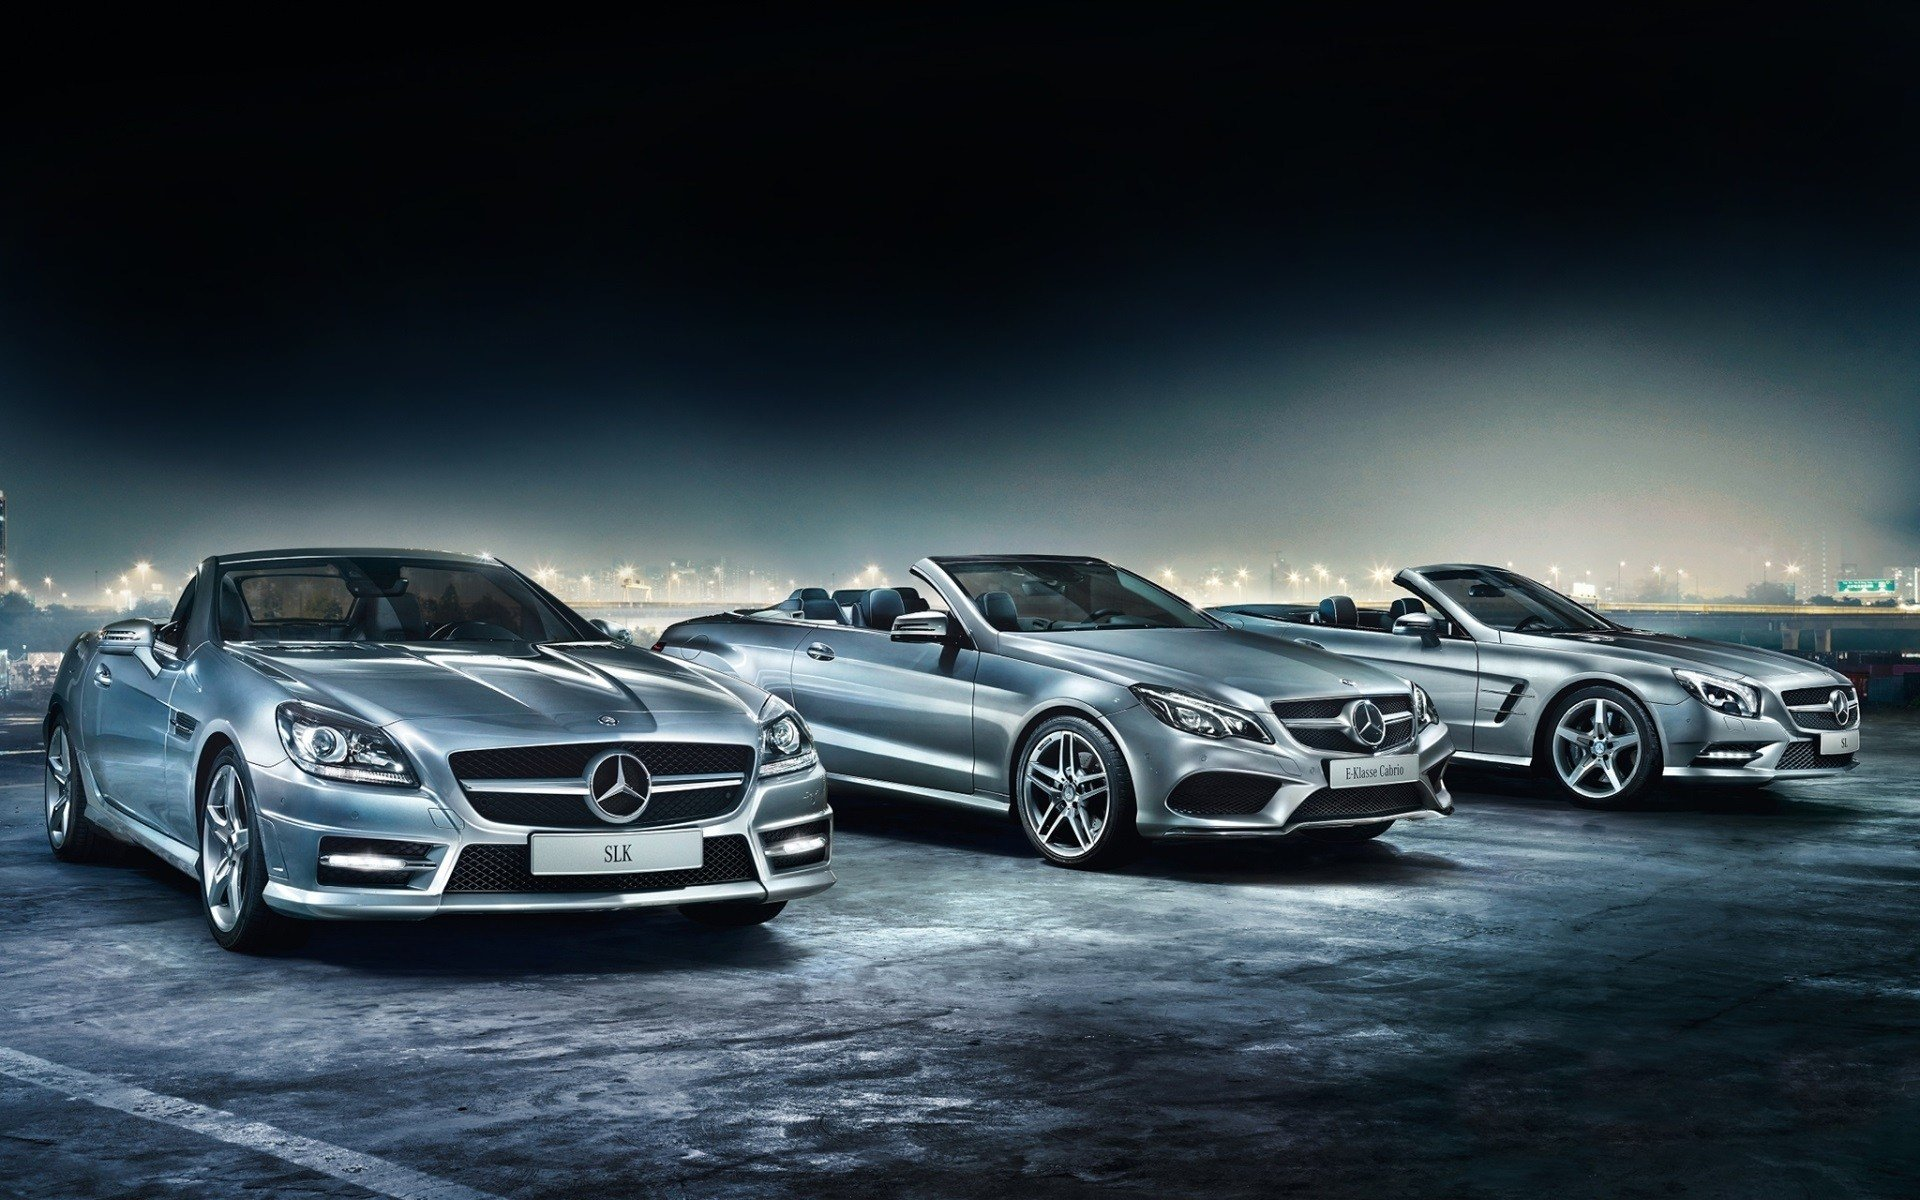 Latest Mercedes Benz Cars At Night Wallpaper Cars Wallpaper Free Download